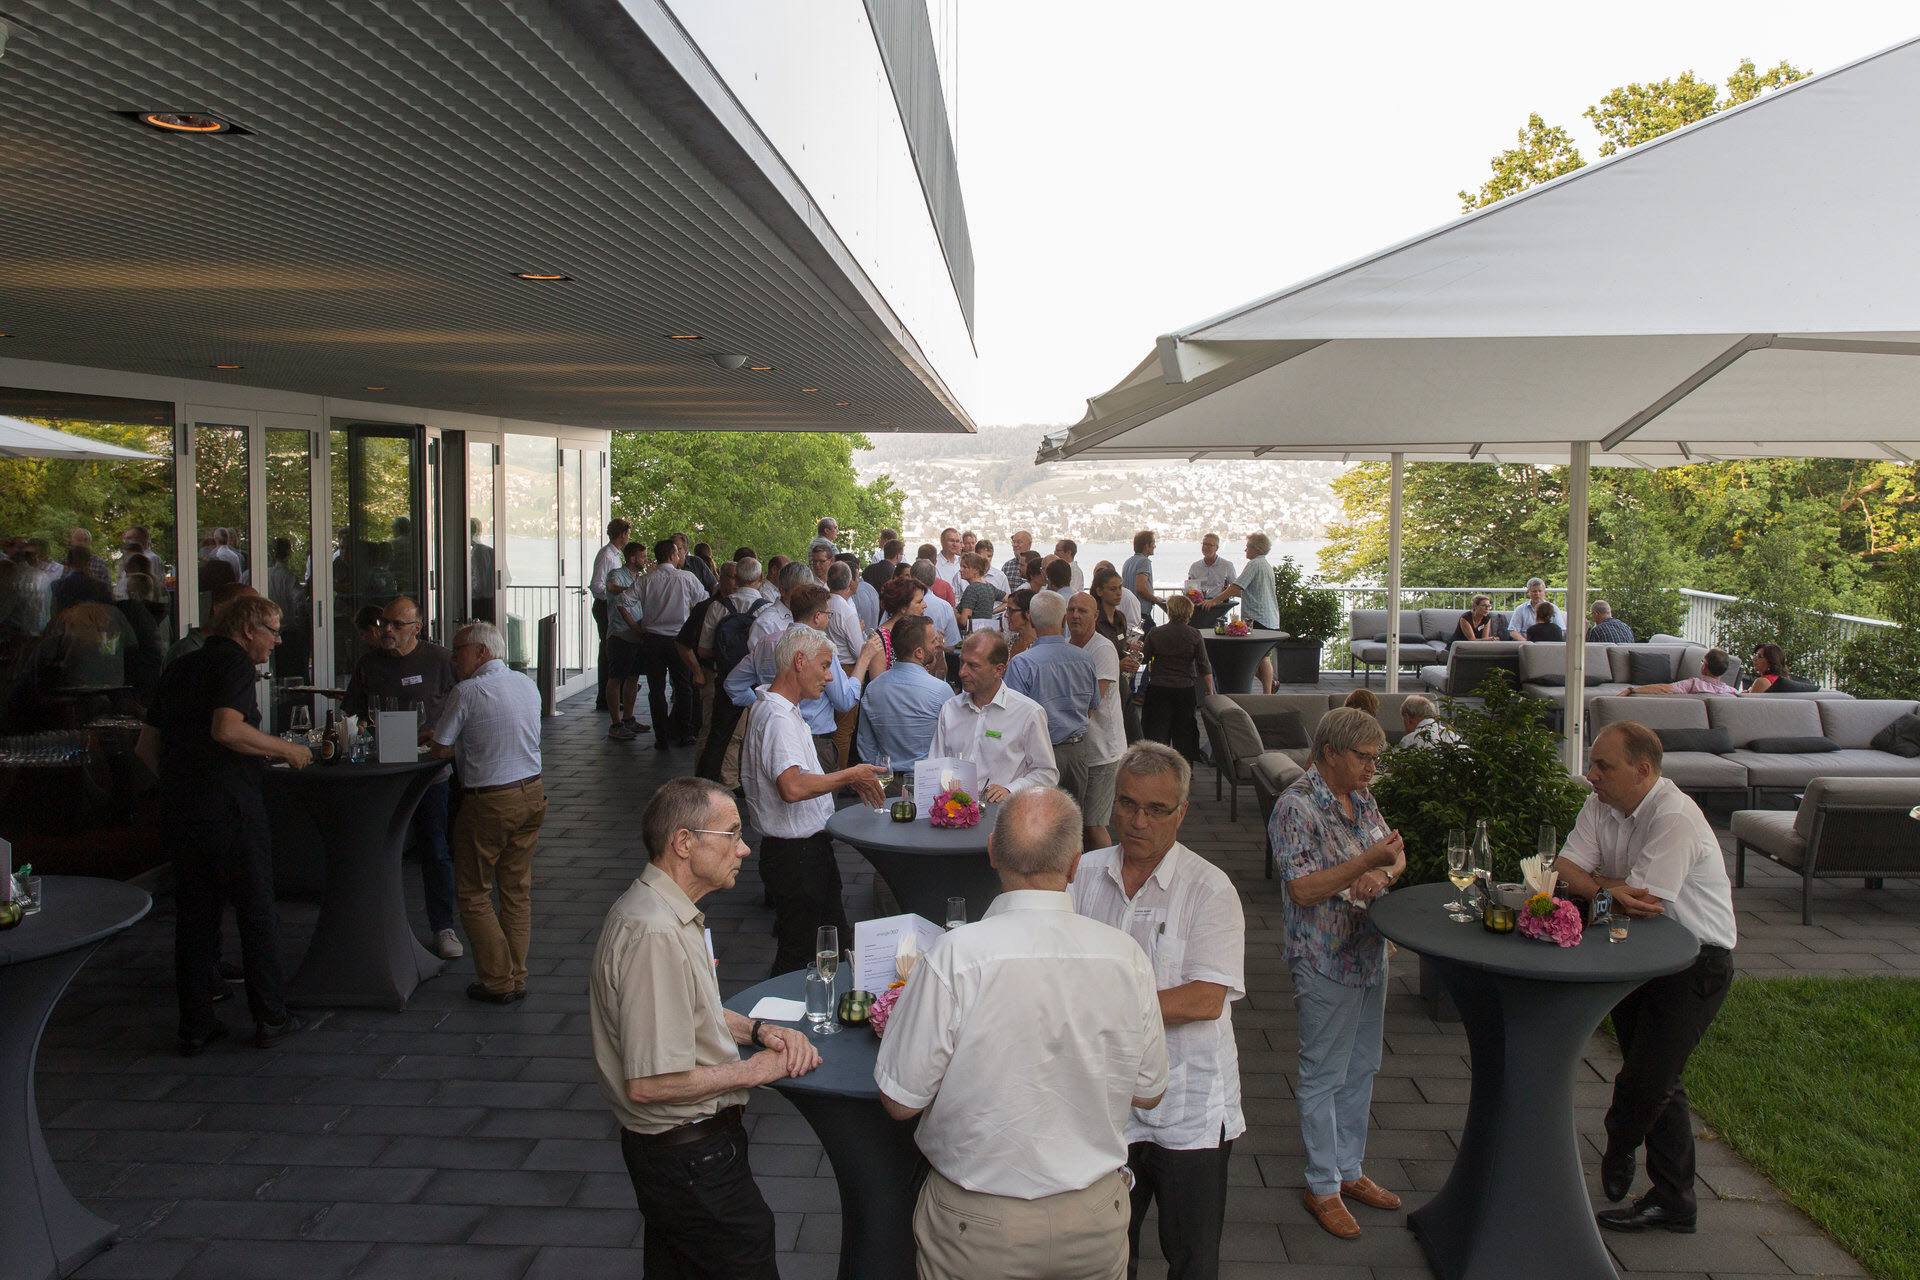 Apero am Networking-Anlass 2019